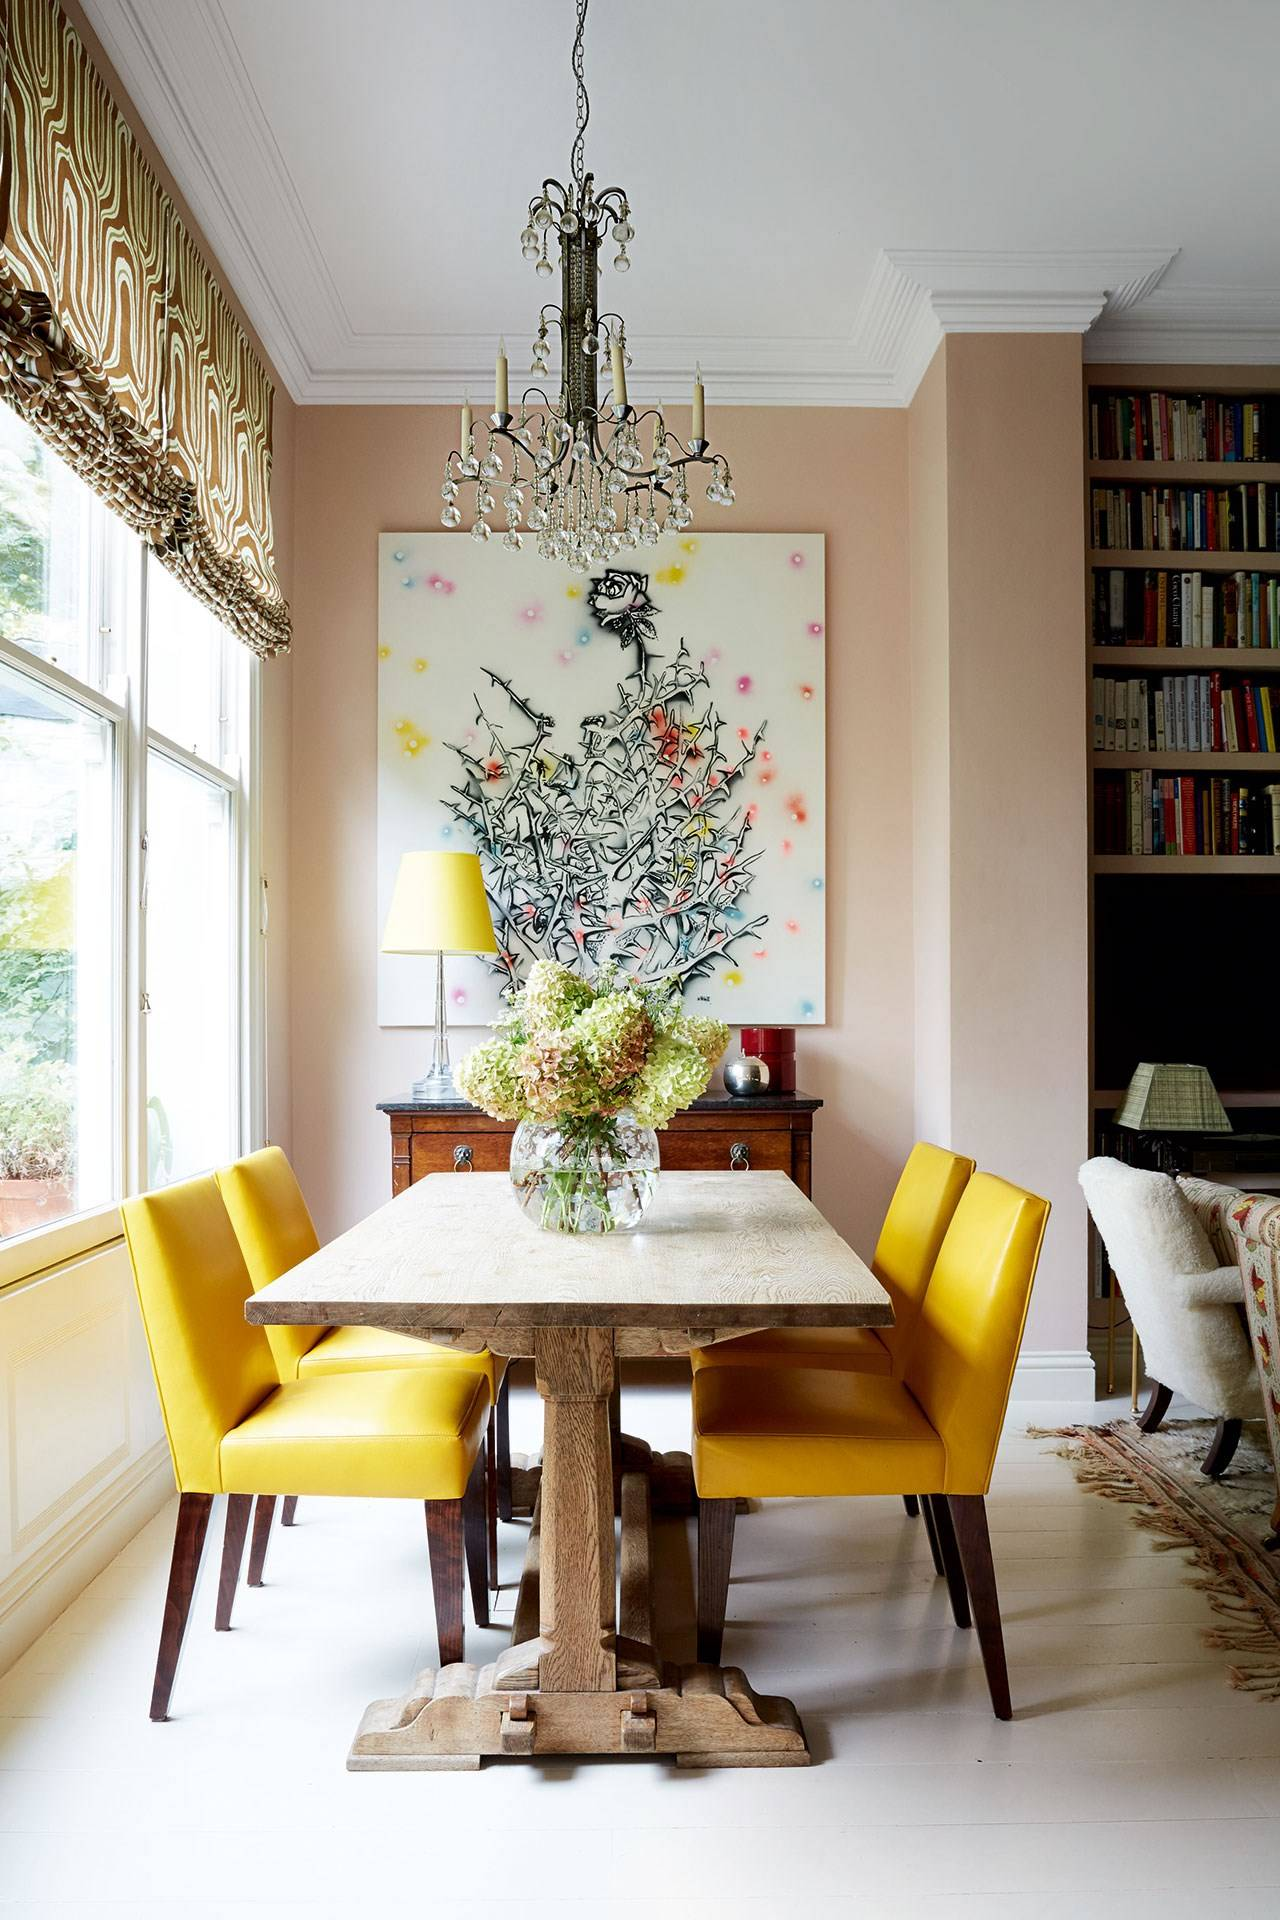 House and garden interior directory boards